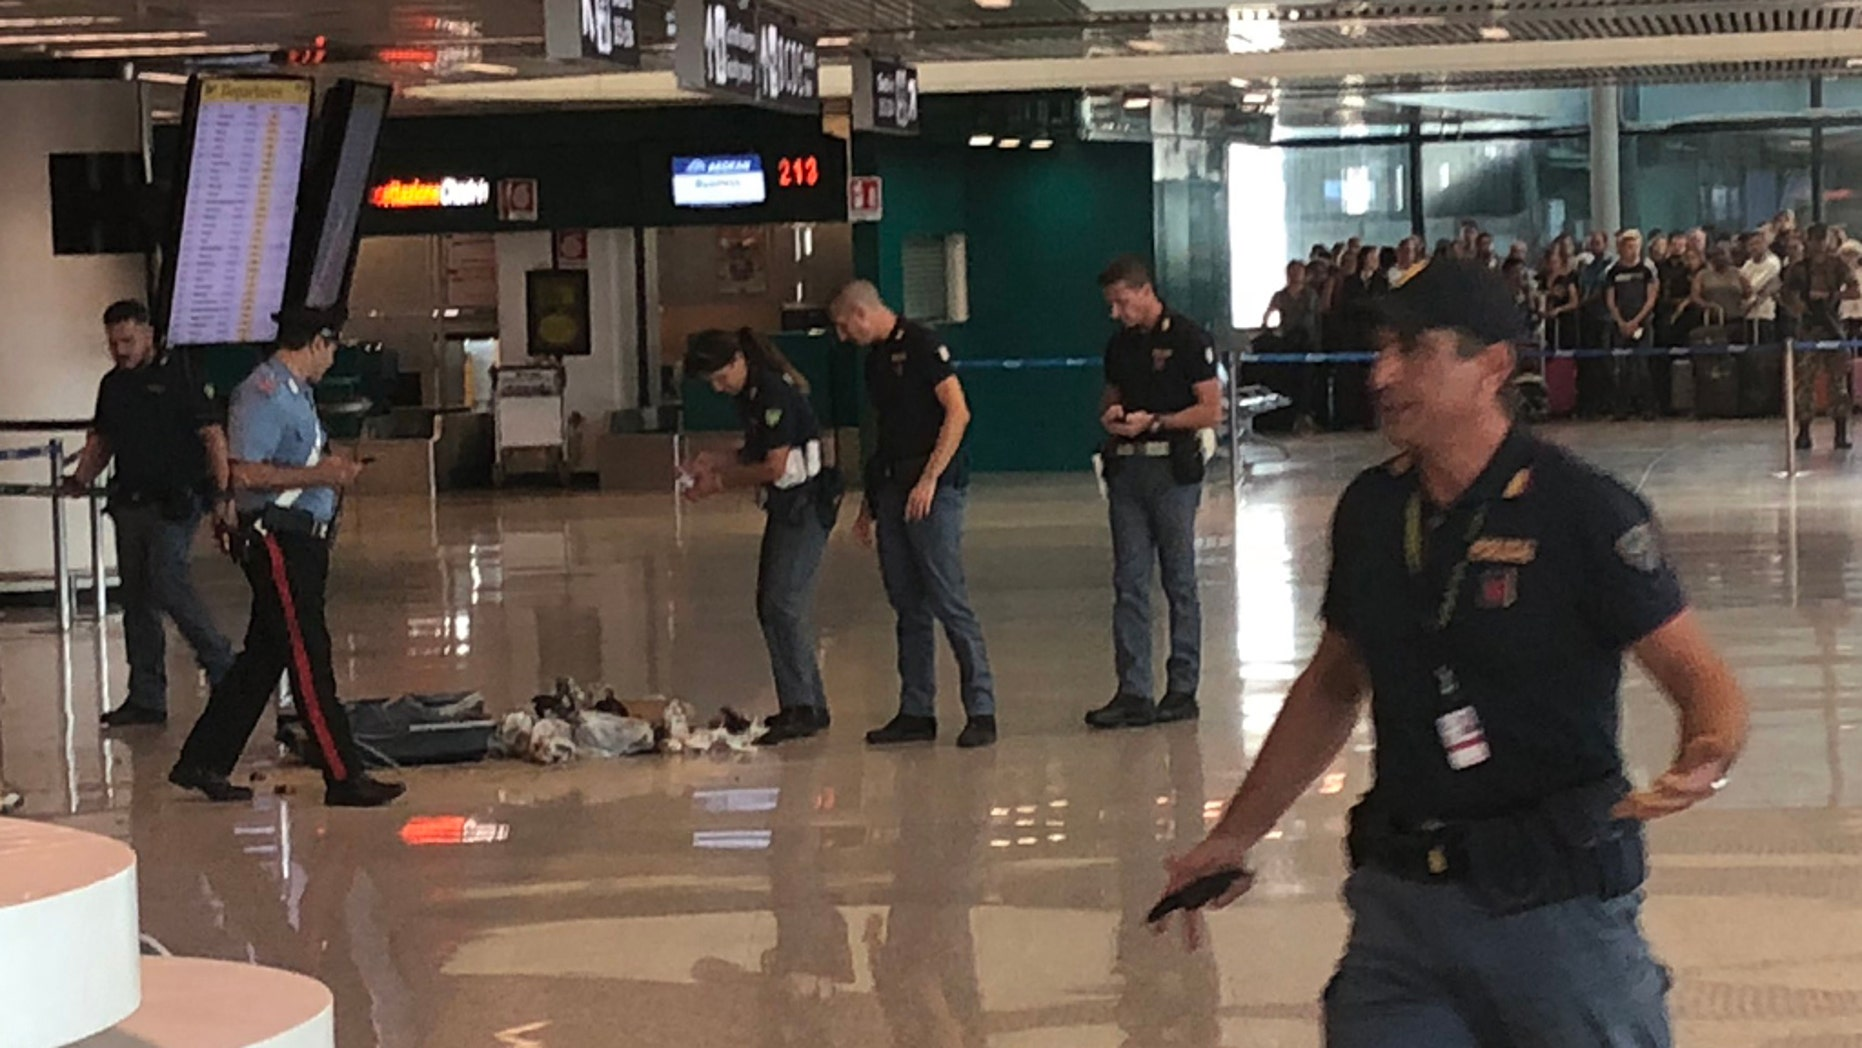 Italian authorities reportedly blew up a suitcase in the middle of a Rome airport.